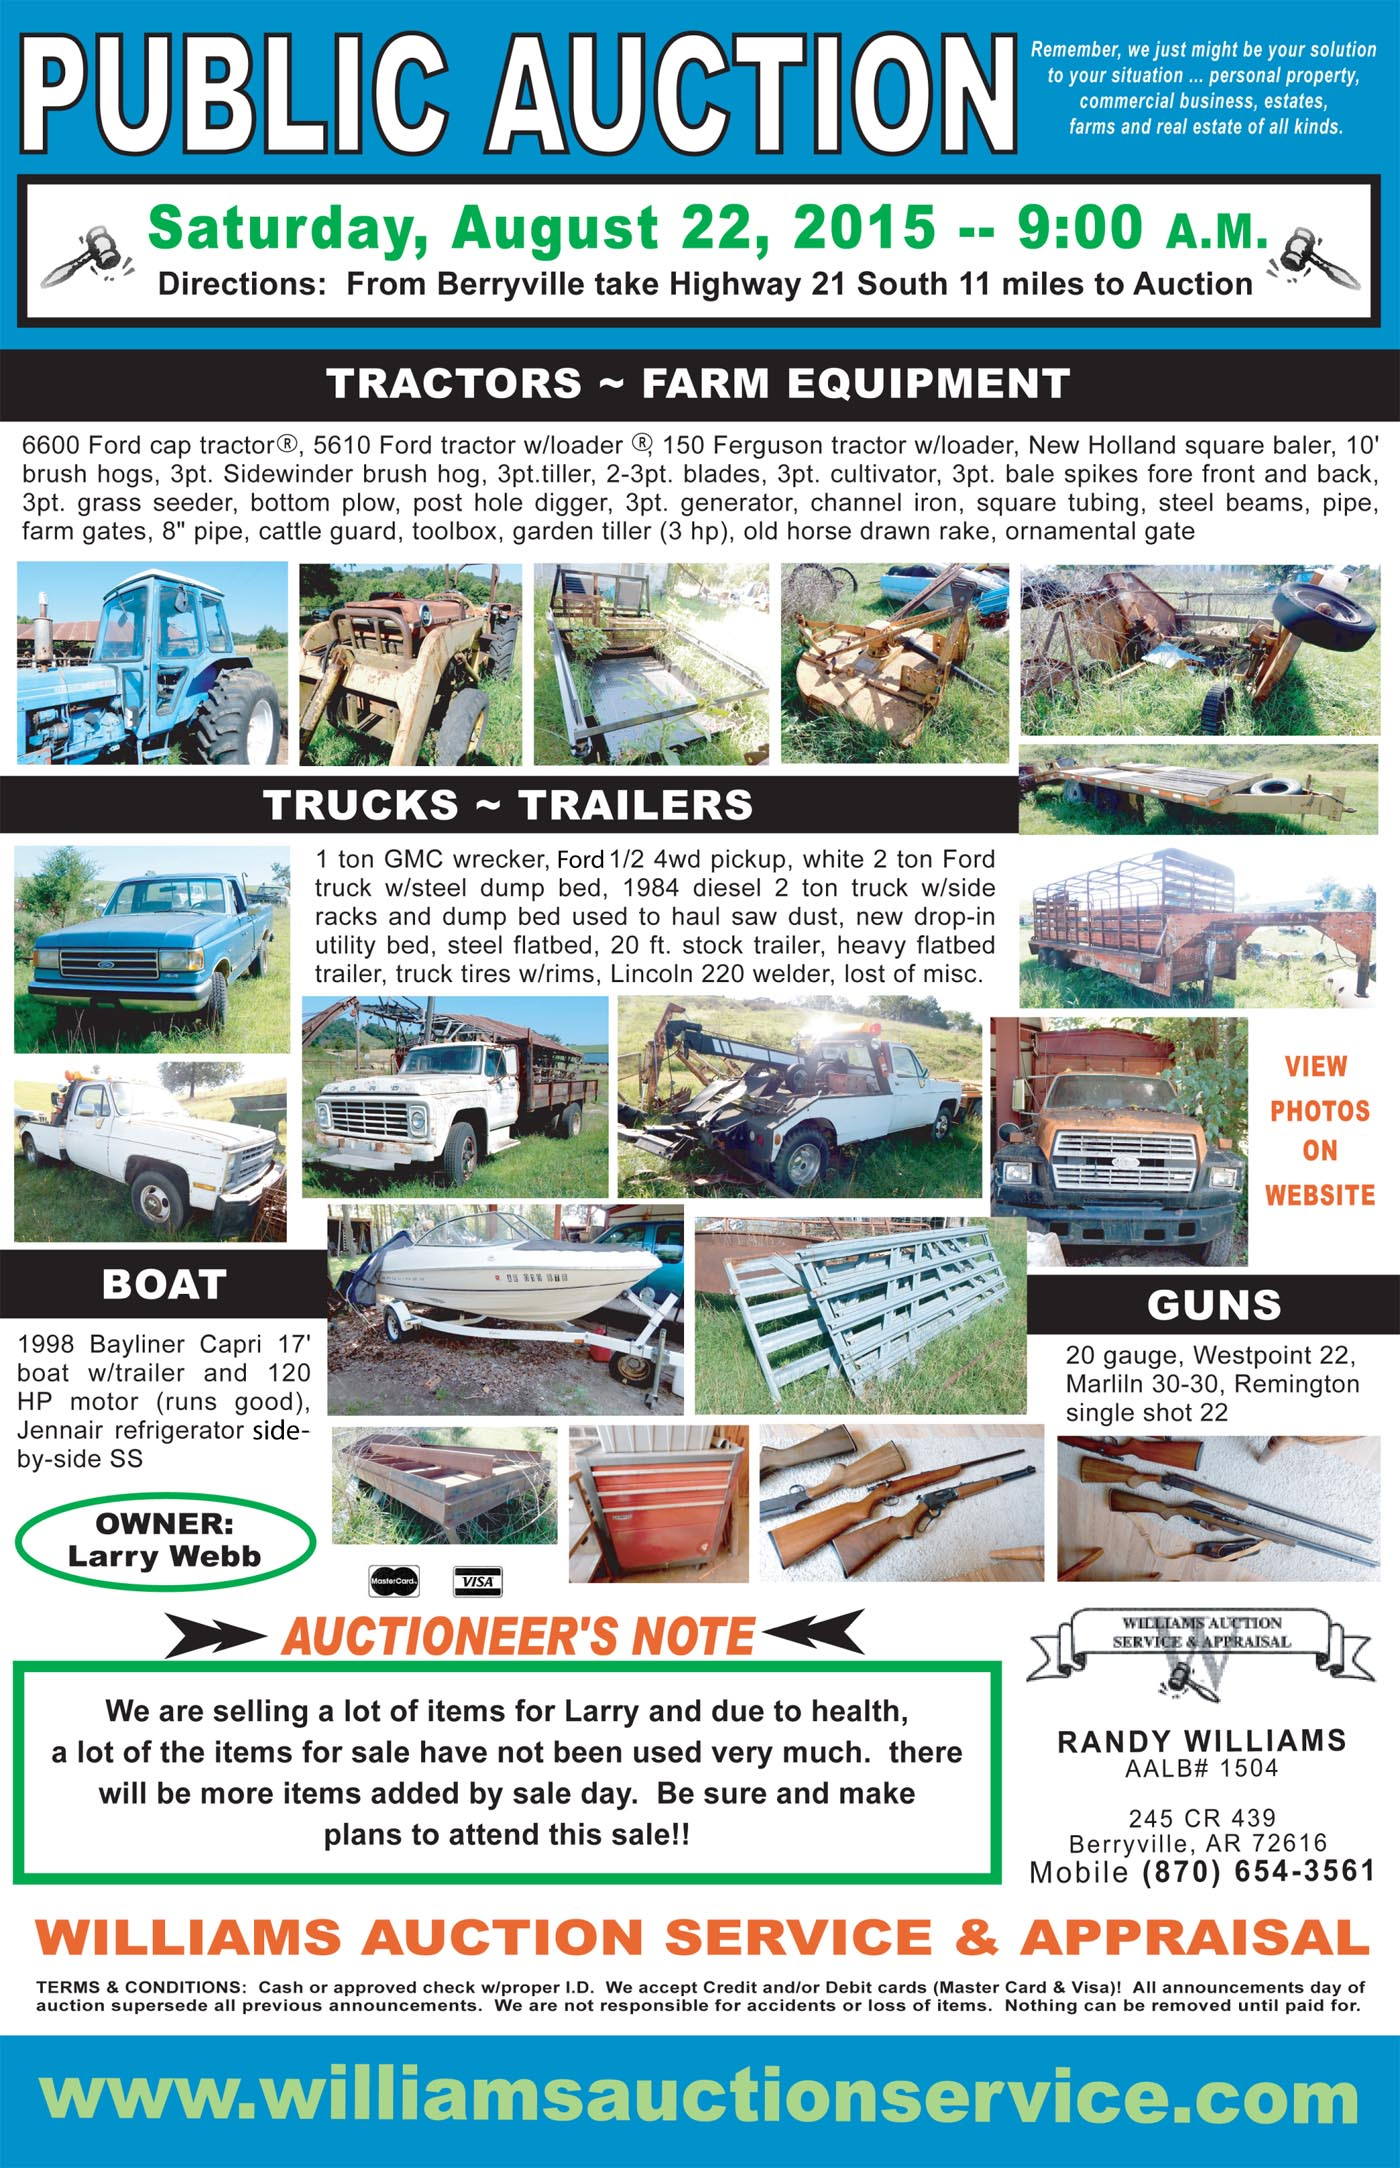 Williams Auction Service Auction | Berryville, Green Forest, Ozarks